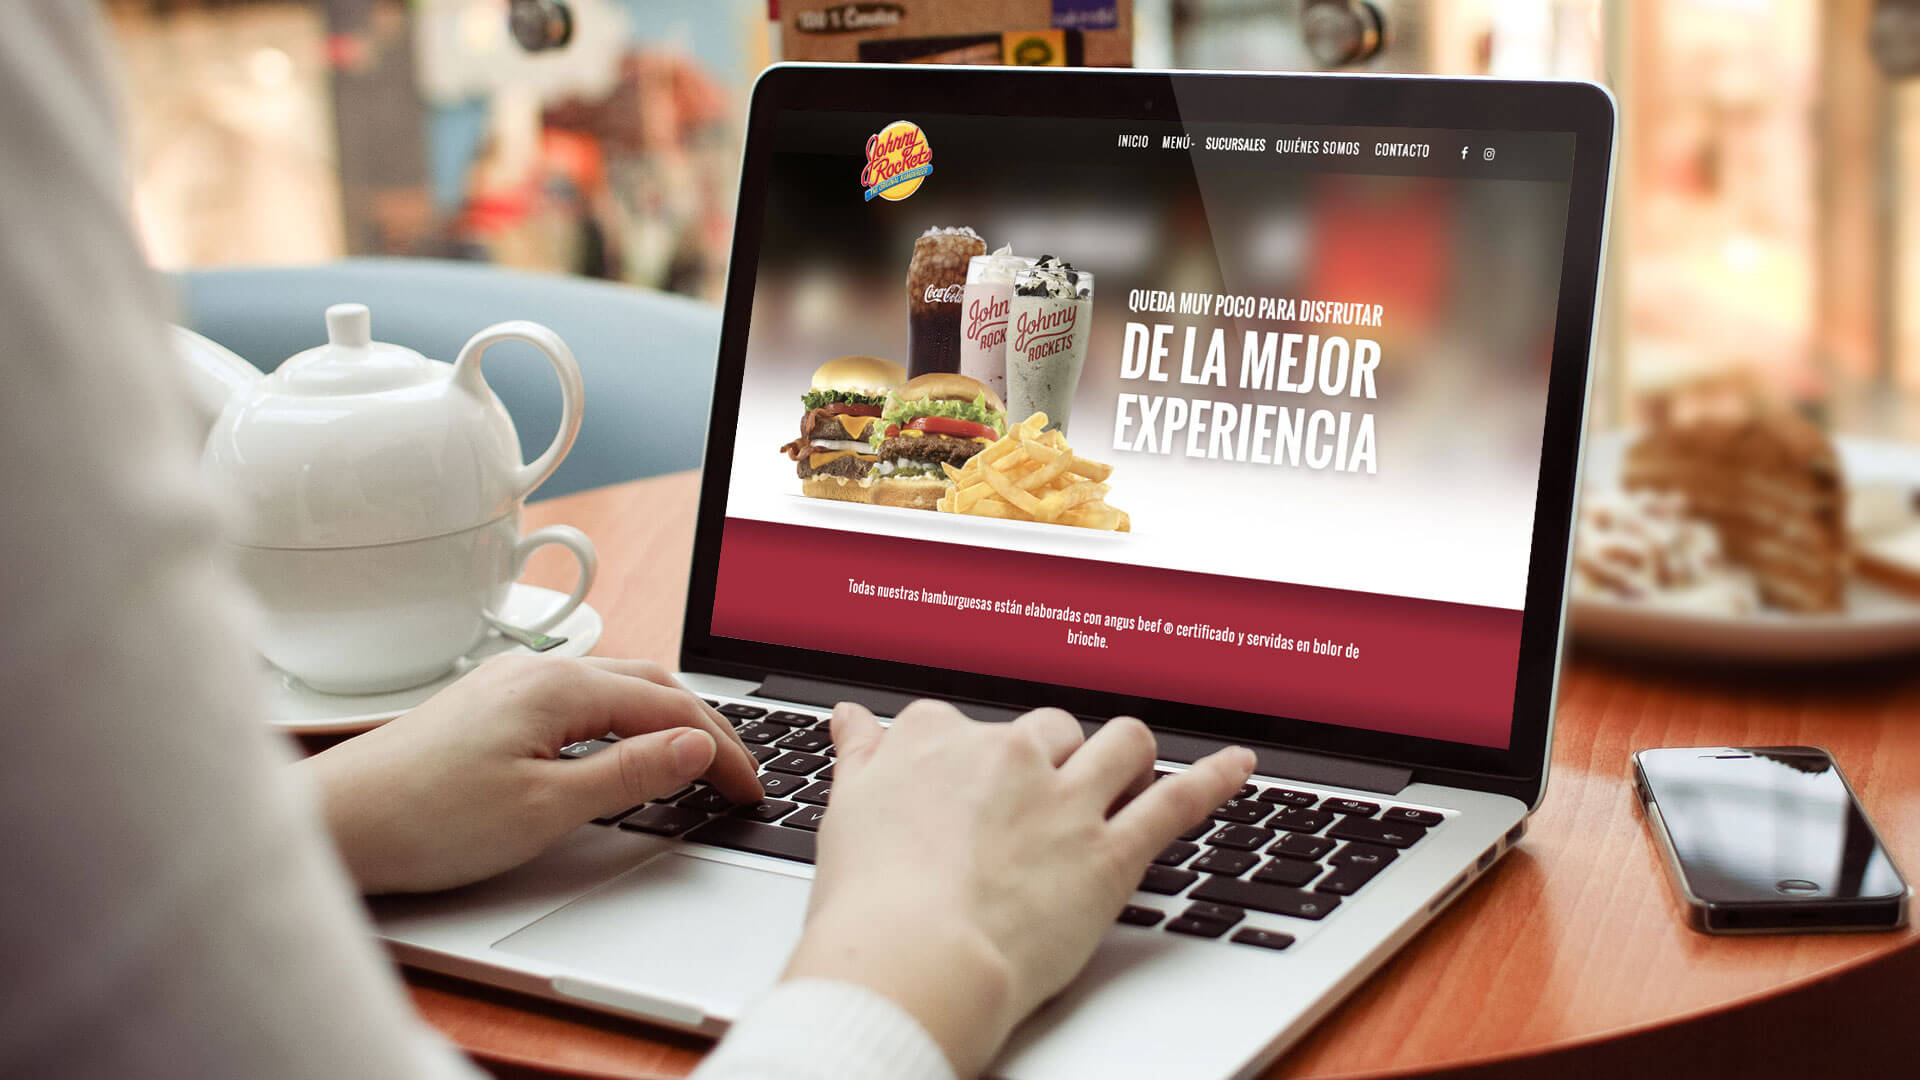 Proyecto web Johnny Rockets